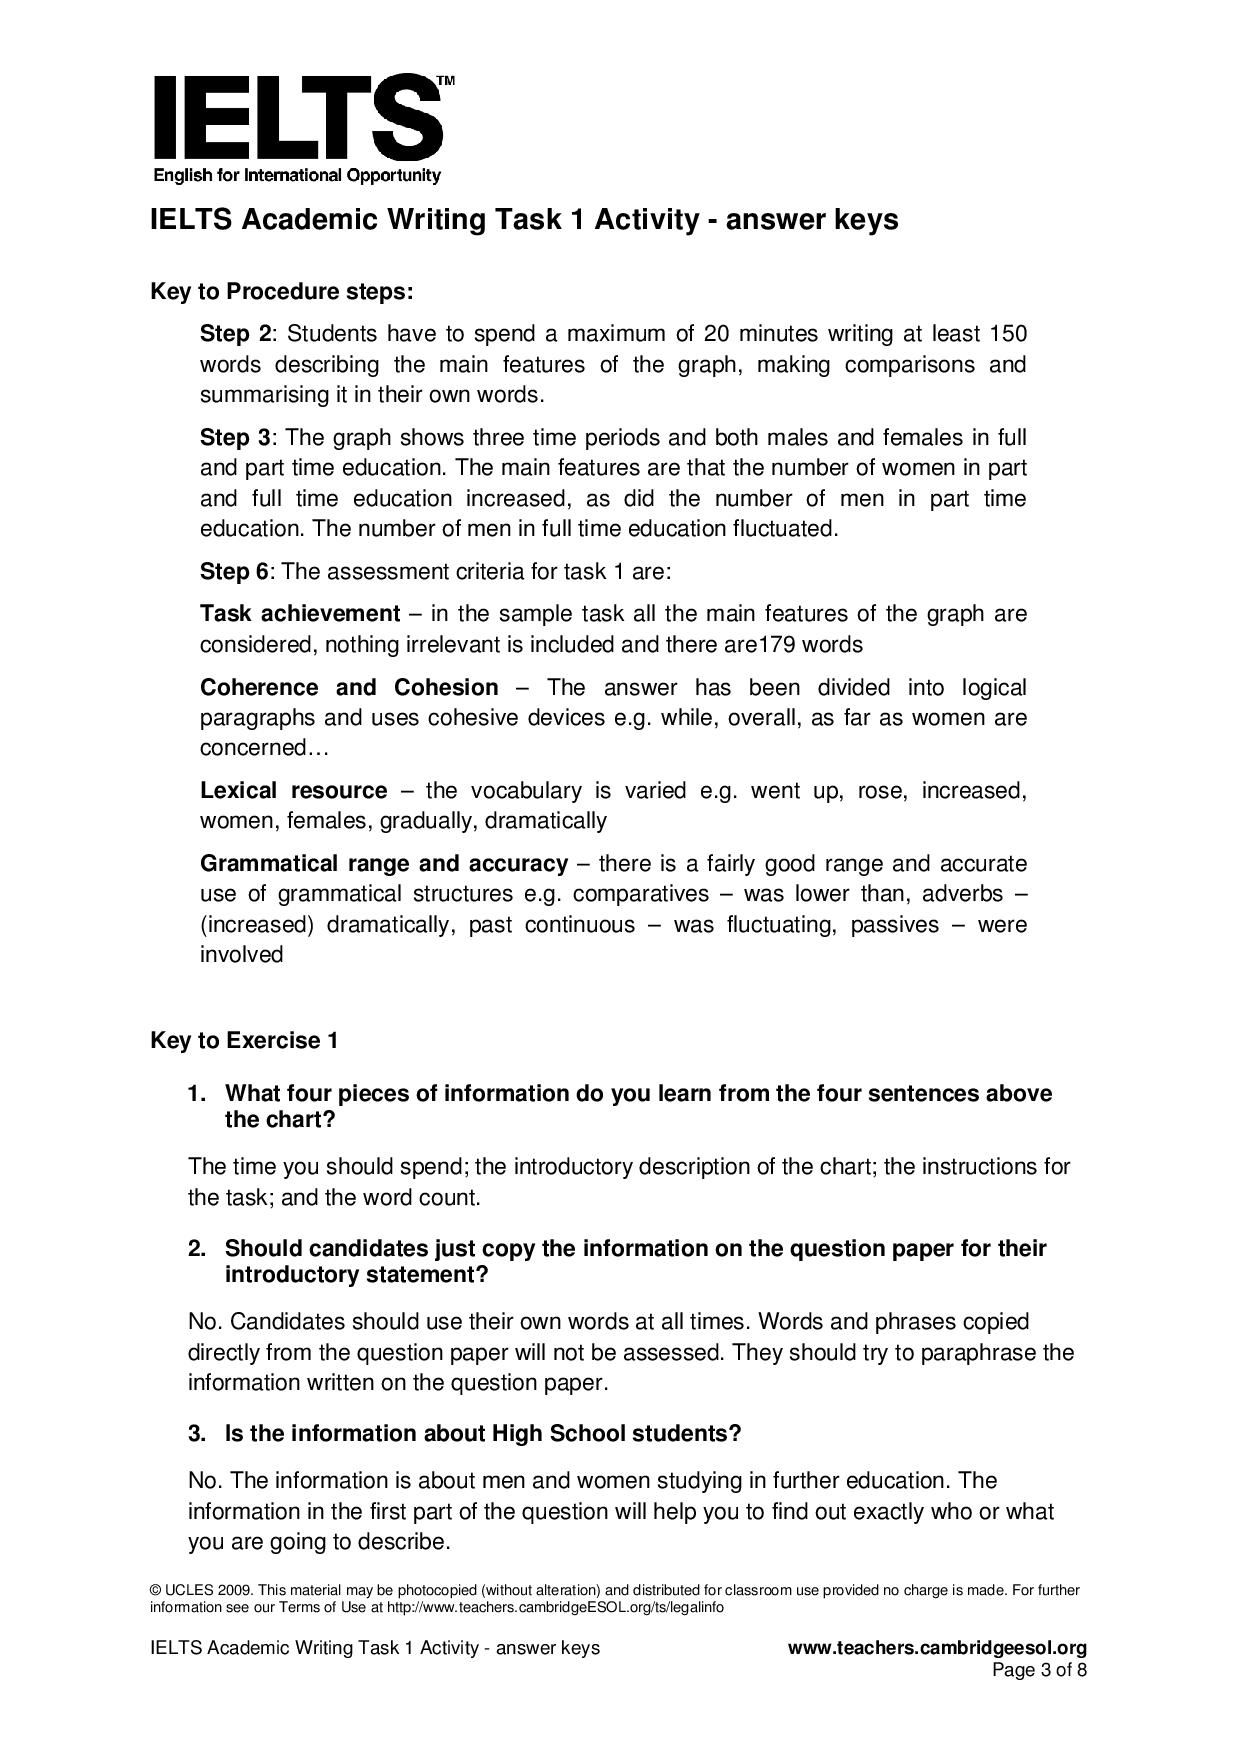 ielts academic writing task 1 activity answer keys page 1 ielts academic writing task 1 activity answer keys page 1